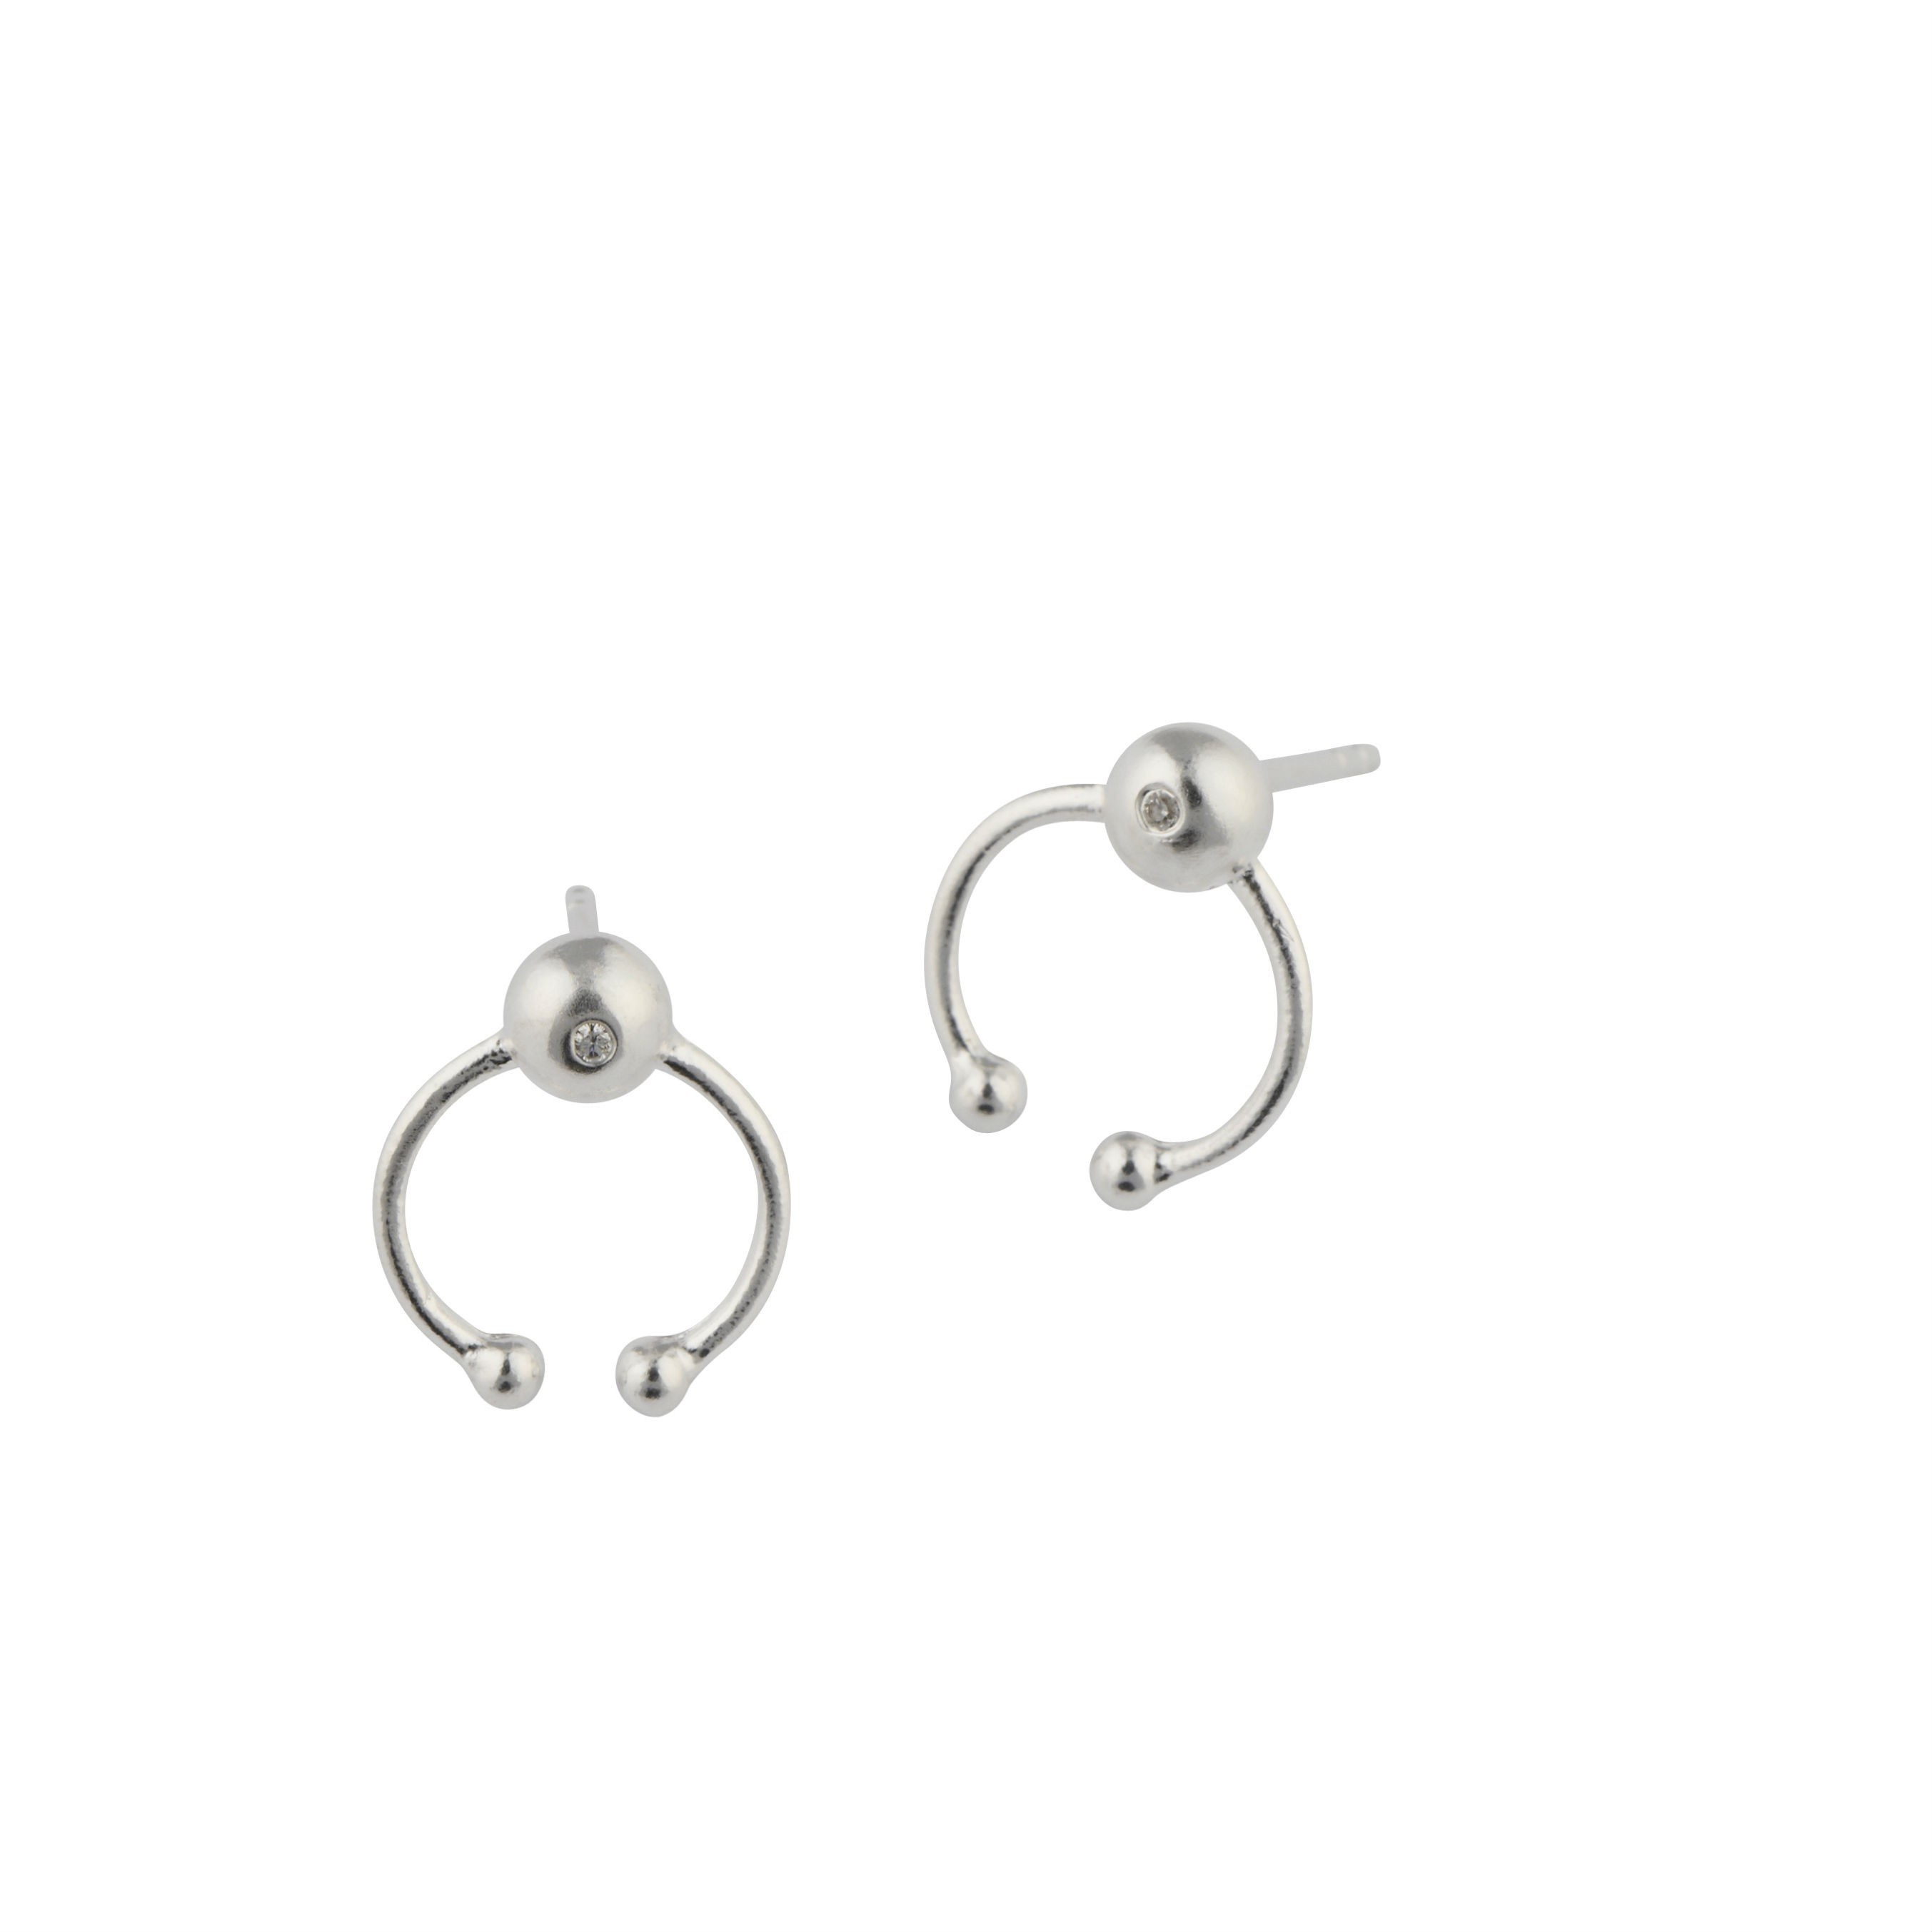 https://www.selecteddesigners.dk/media/catalog/product/r/u/ruby_earplugs-sterling-silver.jpg